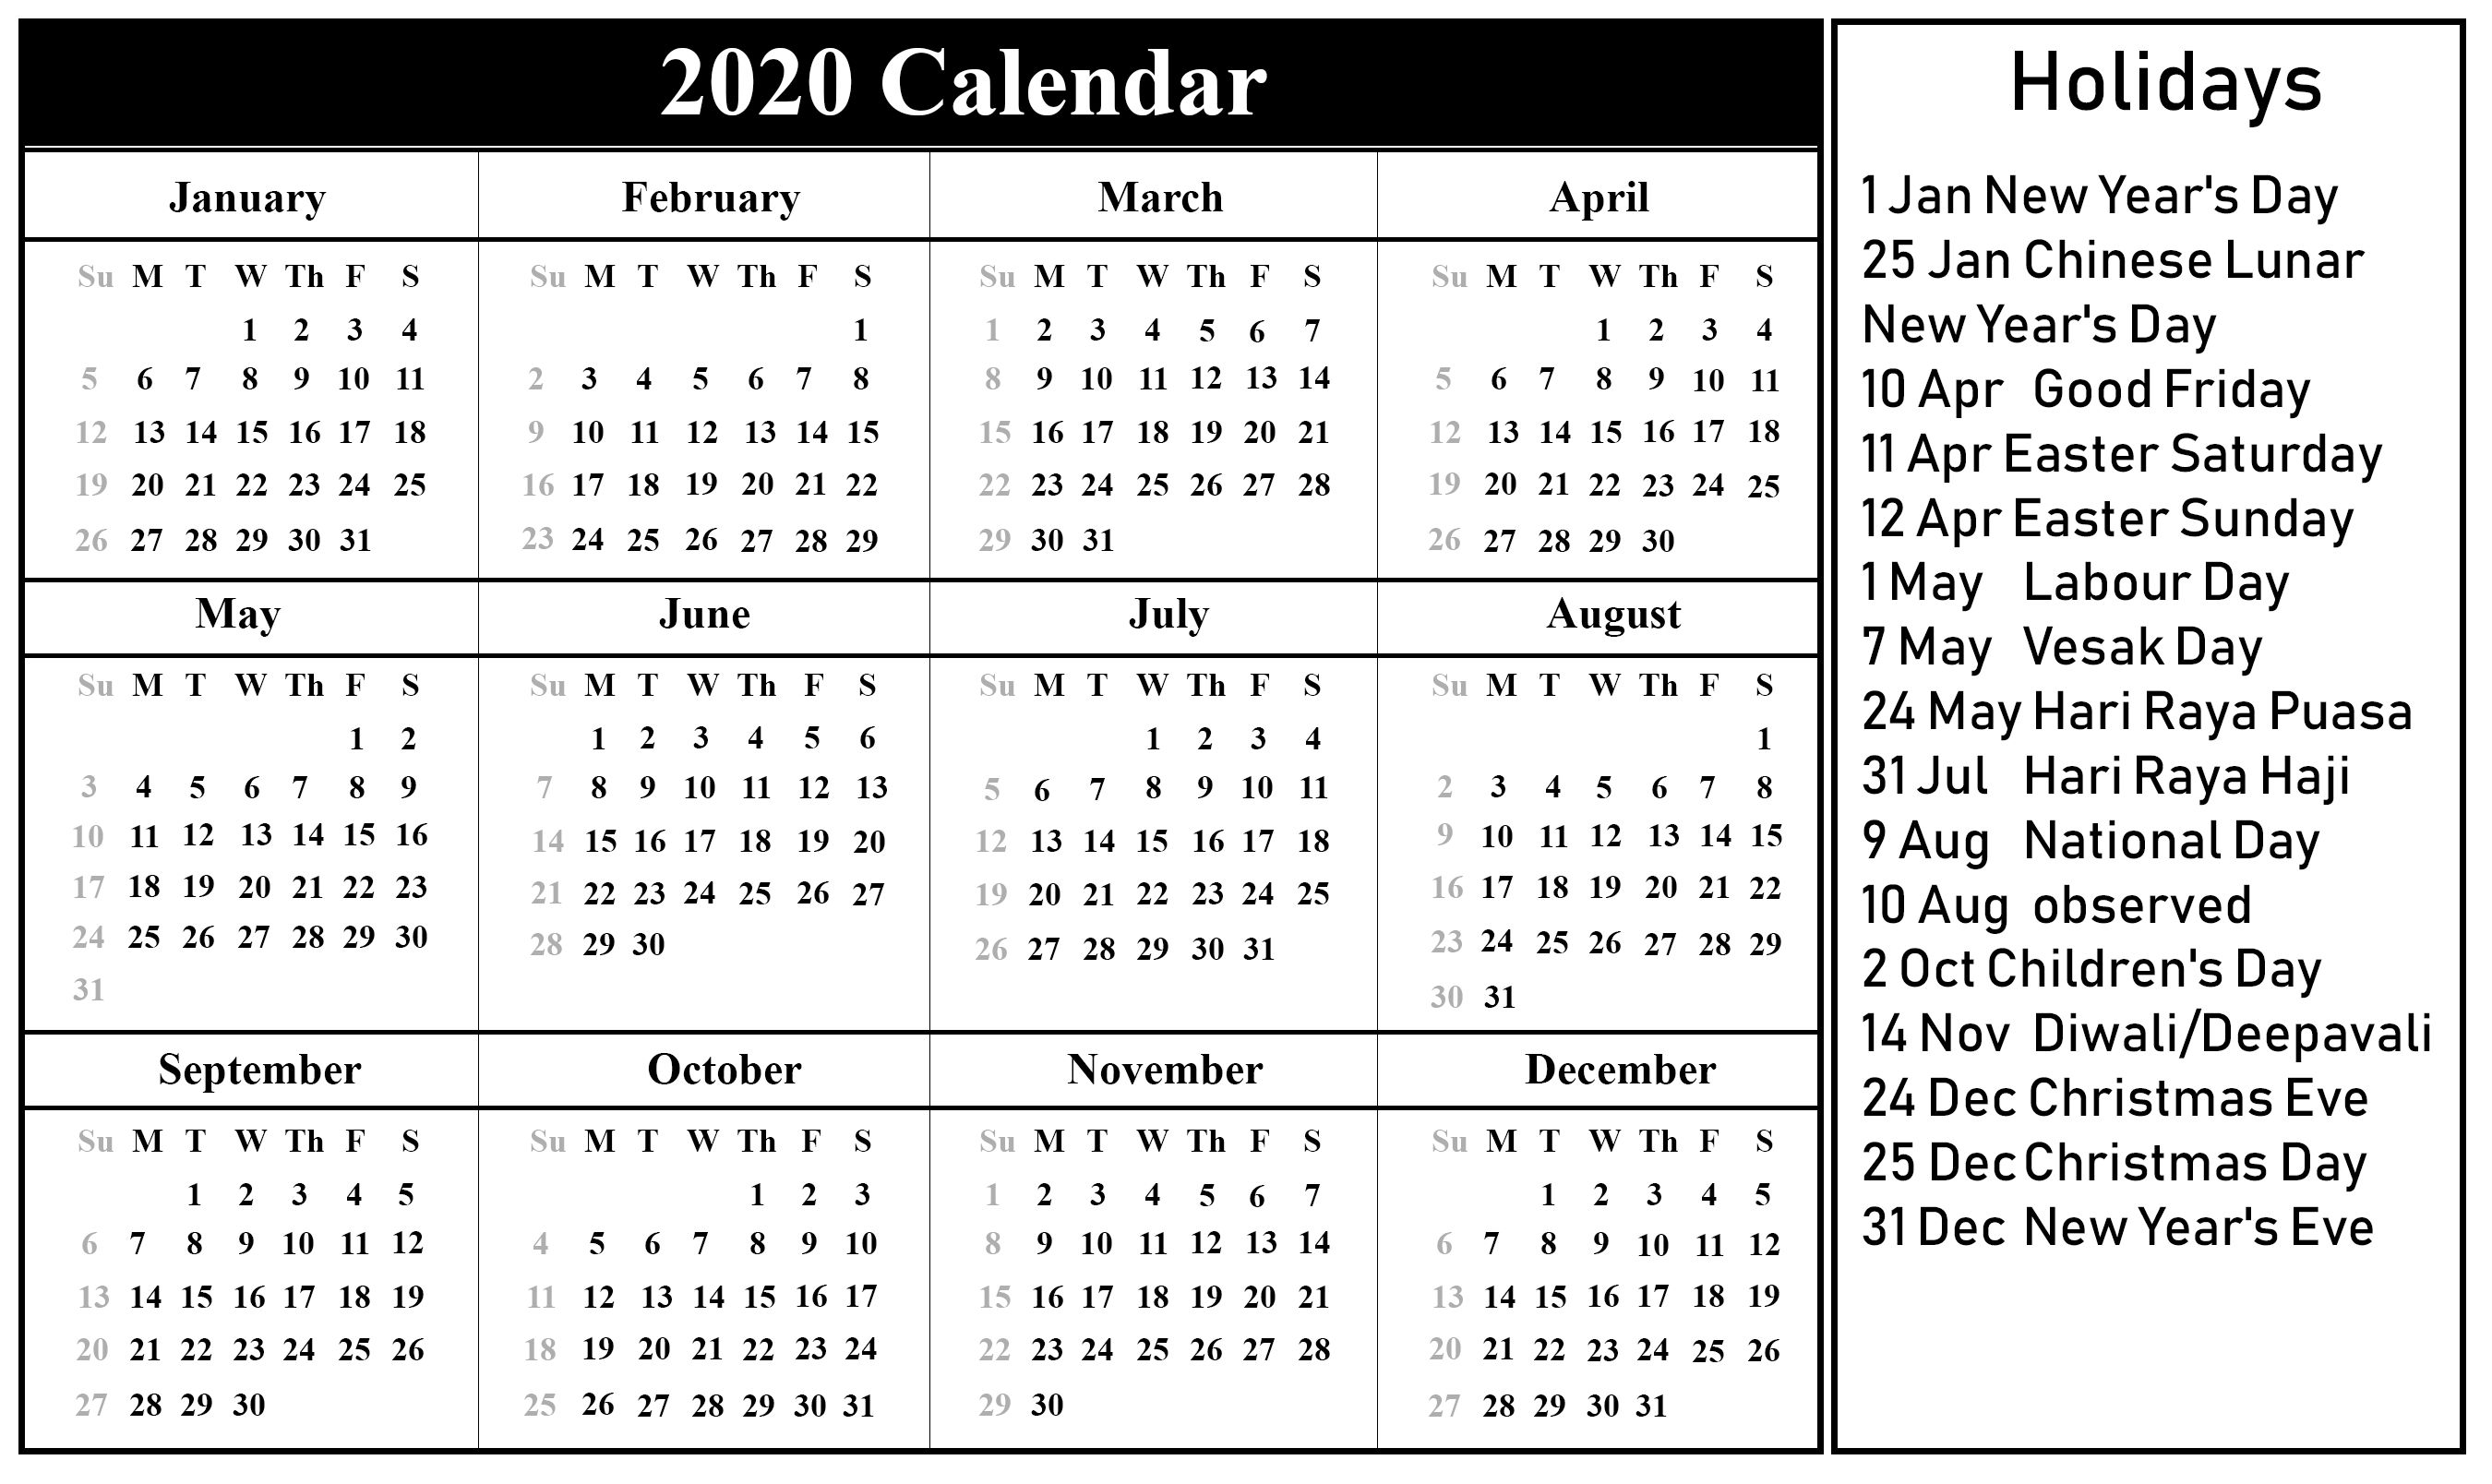 Remarkable Christmas Calendar 2020 Printable Free Holiday Calendar Holiday Calendar Printable Calendar Template